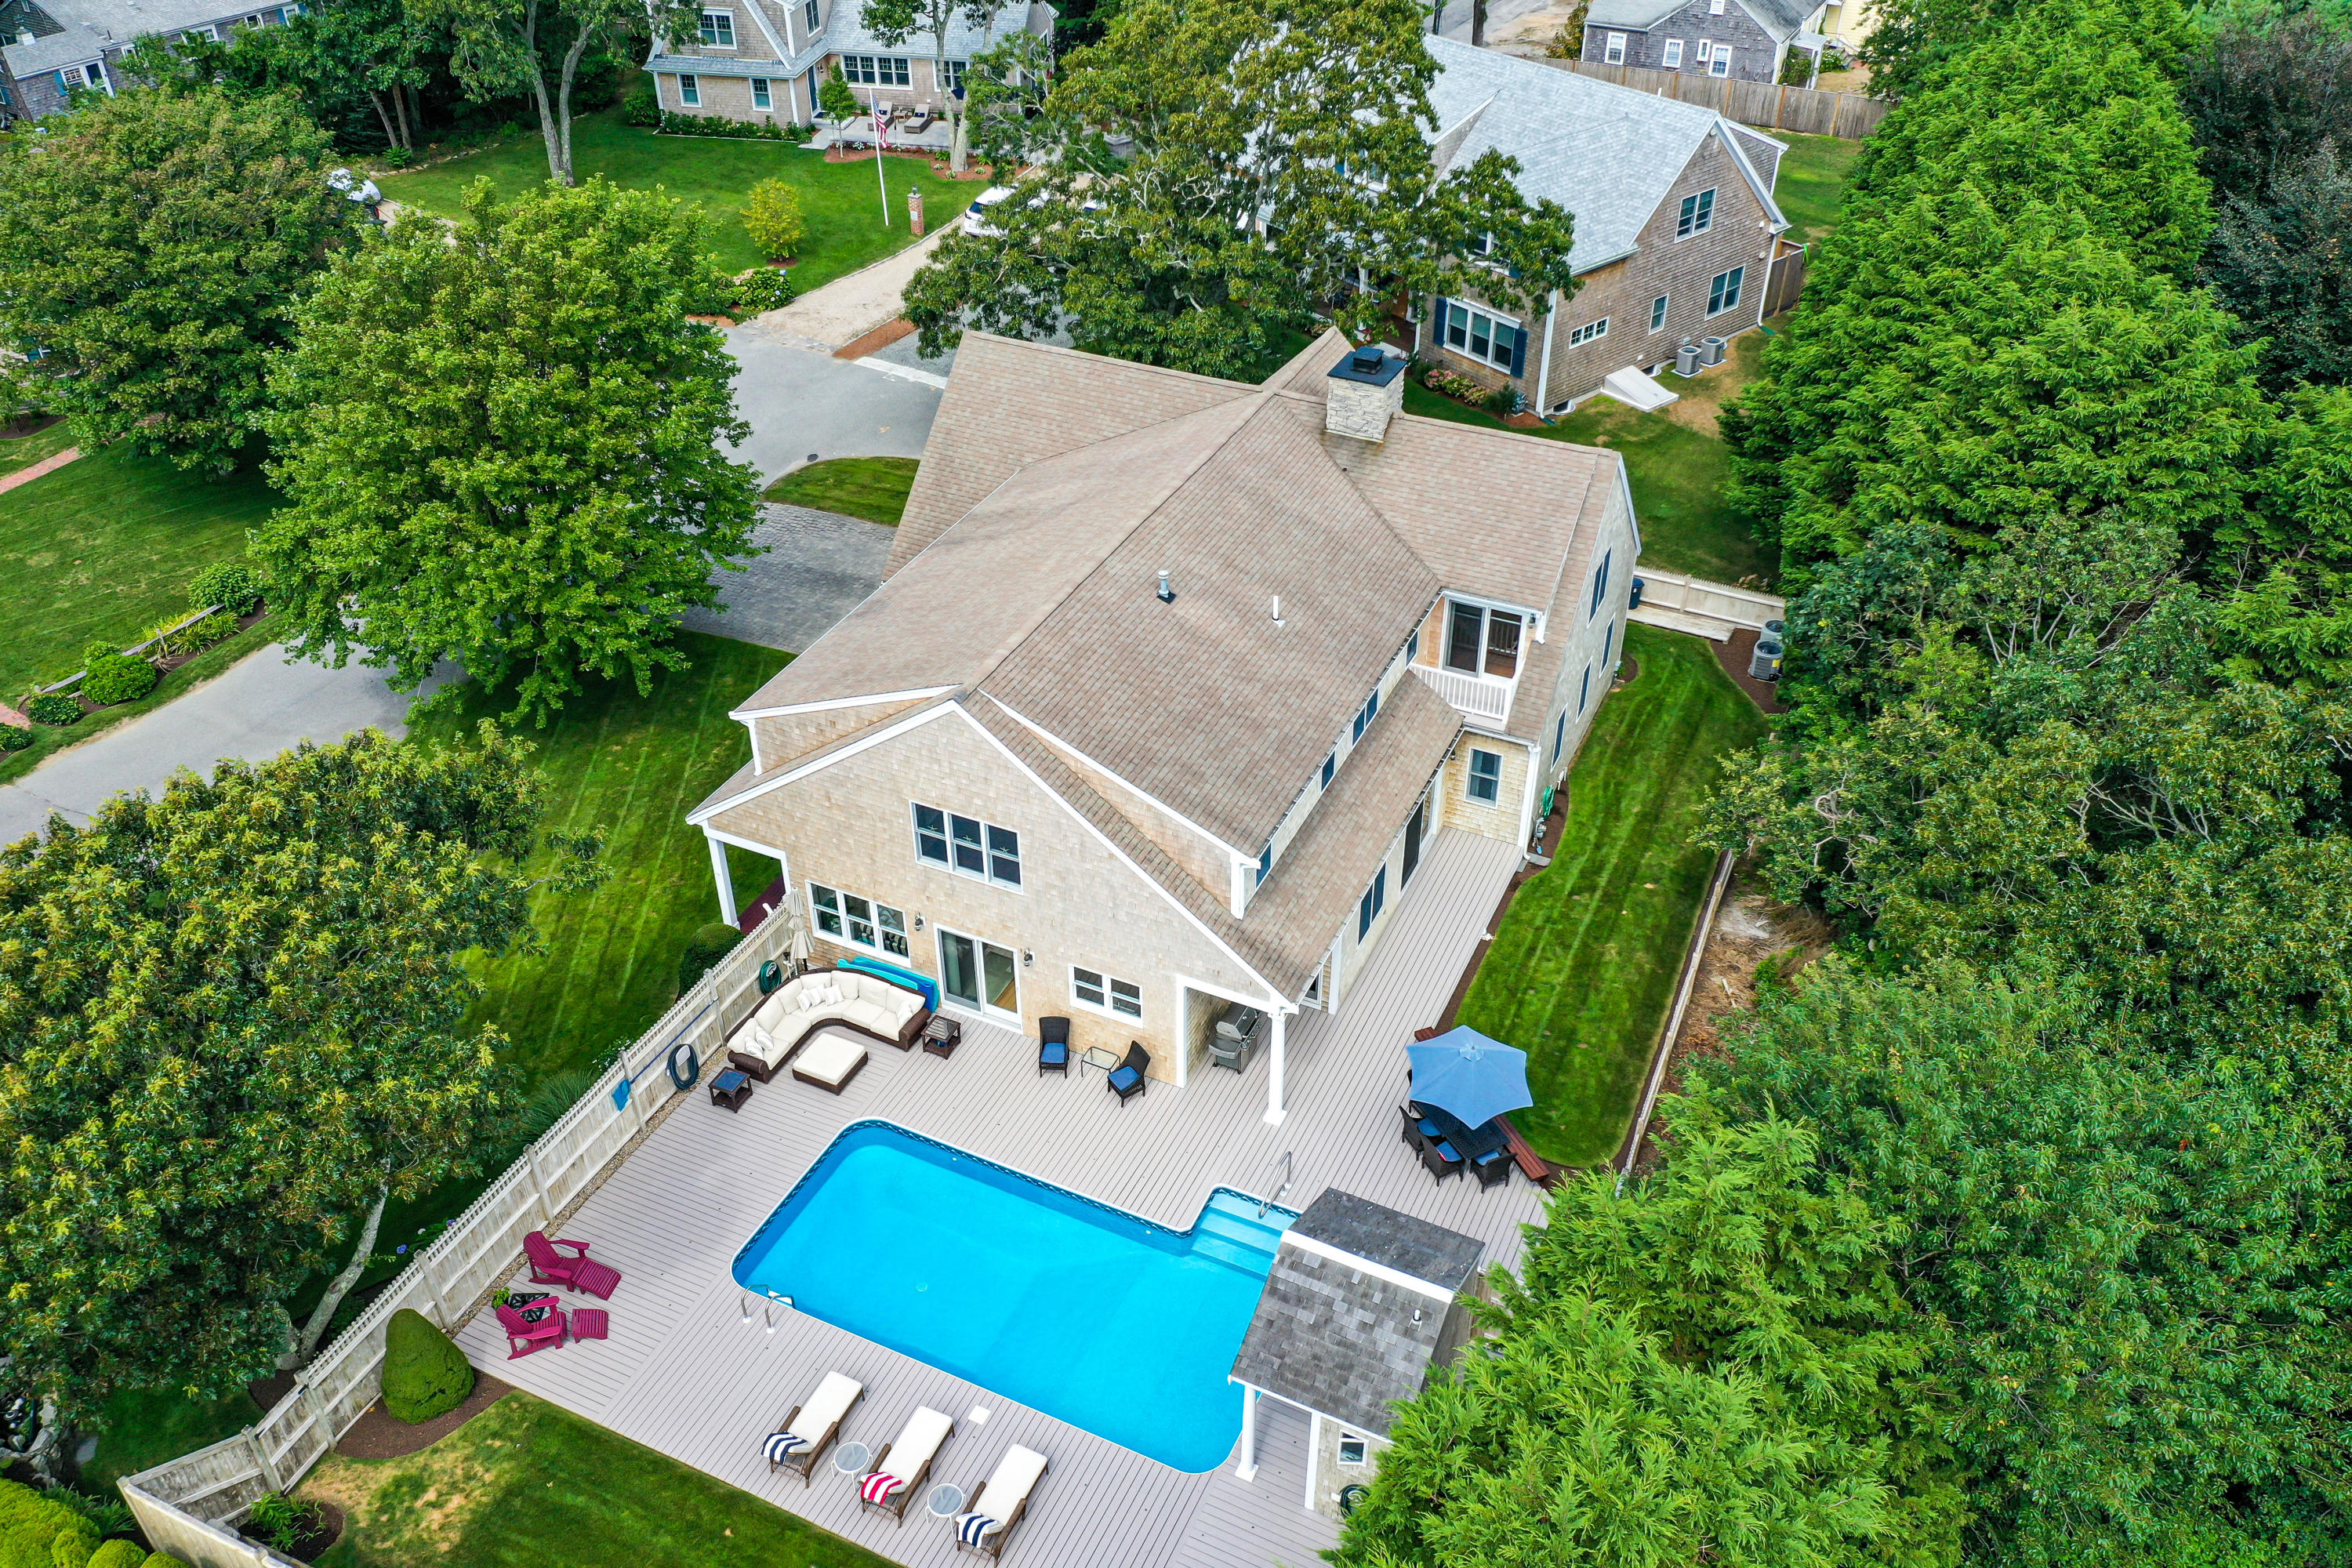 15 Rabbit Run, West Harwich MA, 02671 details